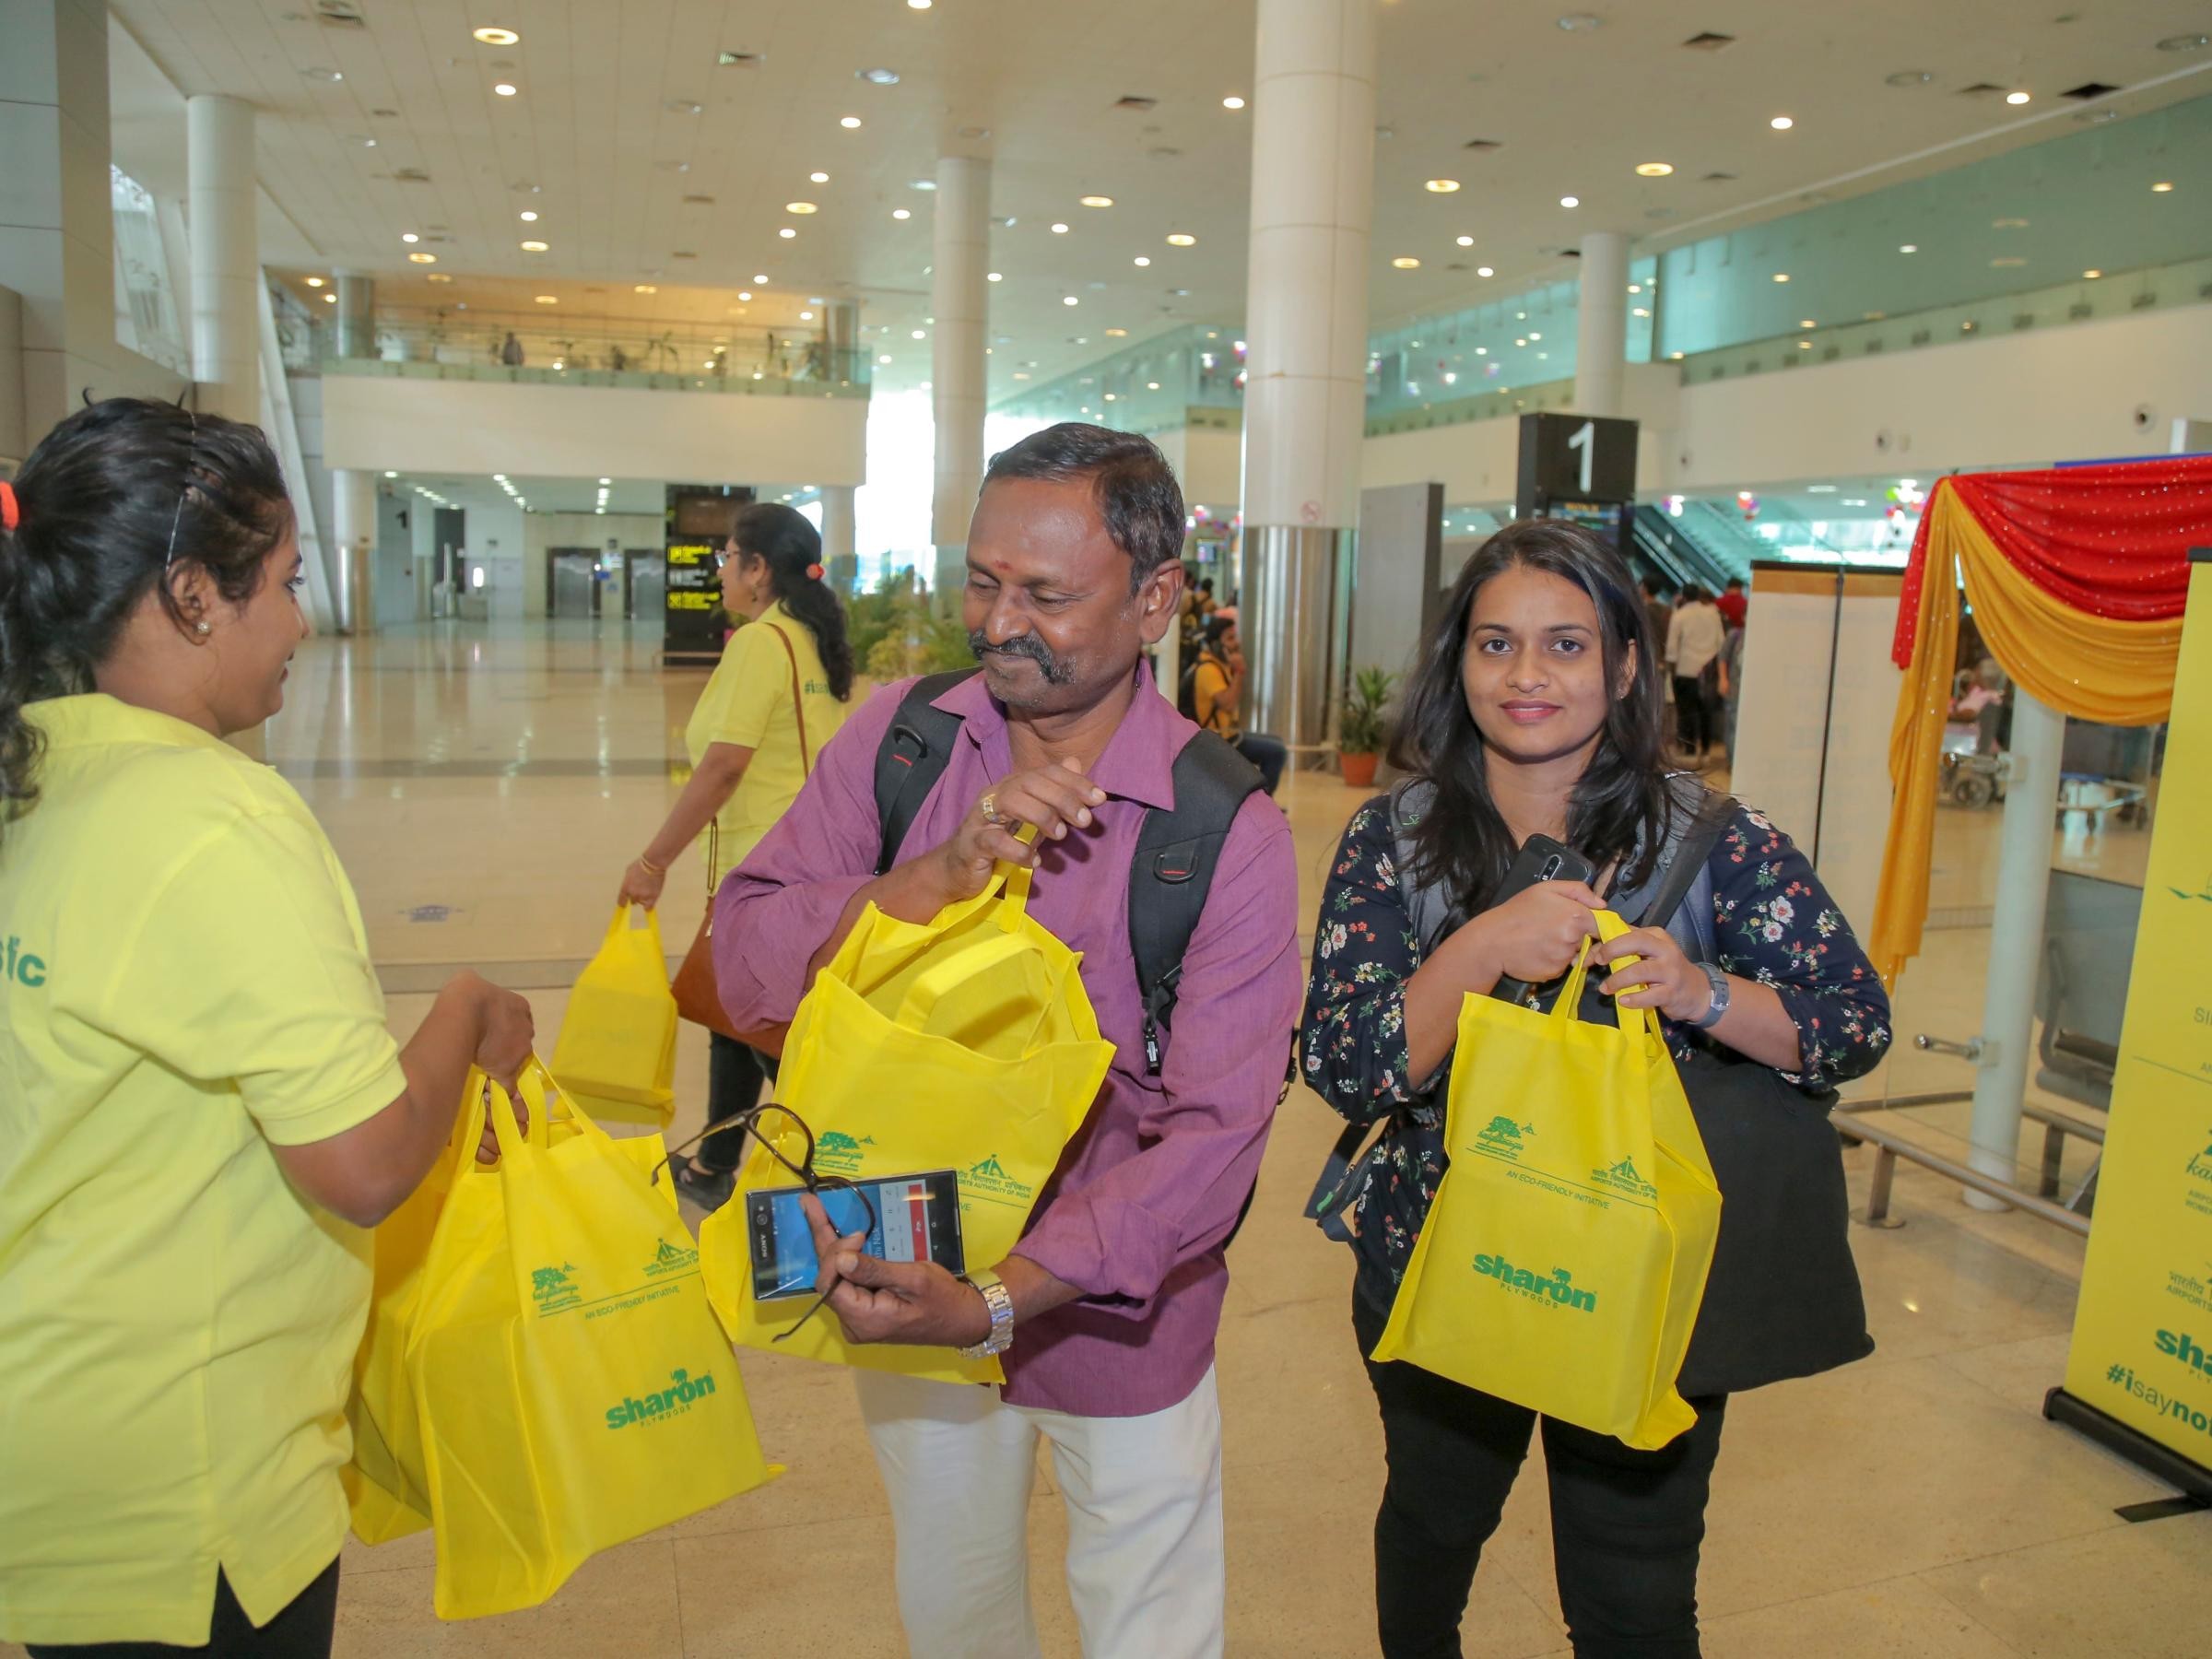 Multi use bags giveaway in Airport By Sharonply